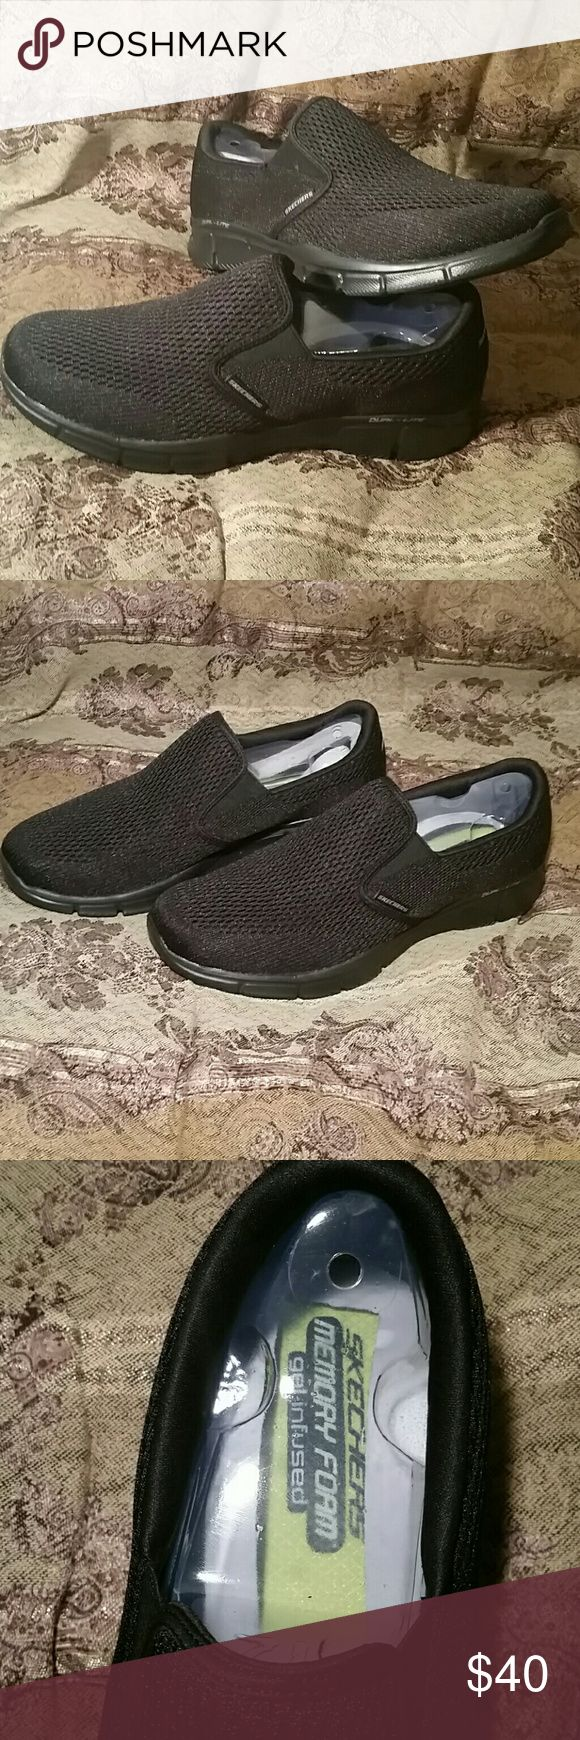 Skechers Men's Equalizer Double Play size 12 Memory foam and gel infused. Comfortable men's shoes that have never been worn Skechers Shoes Loafers & Slip-Ons